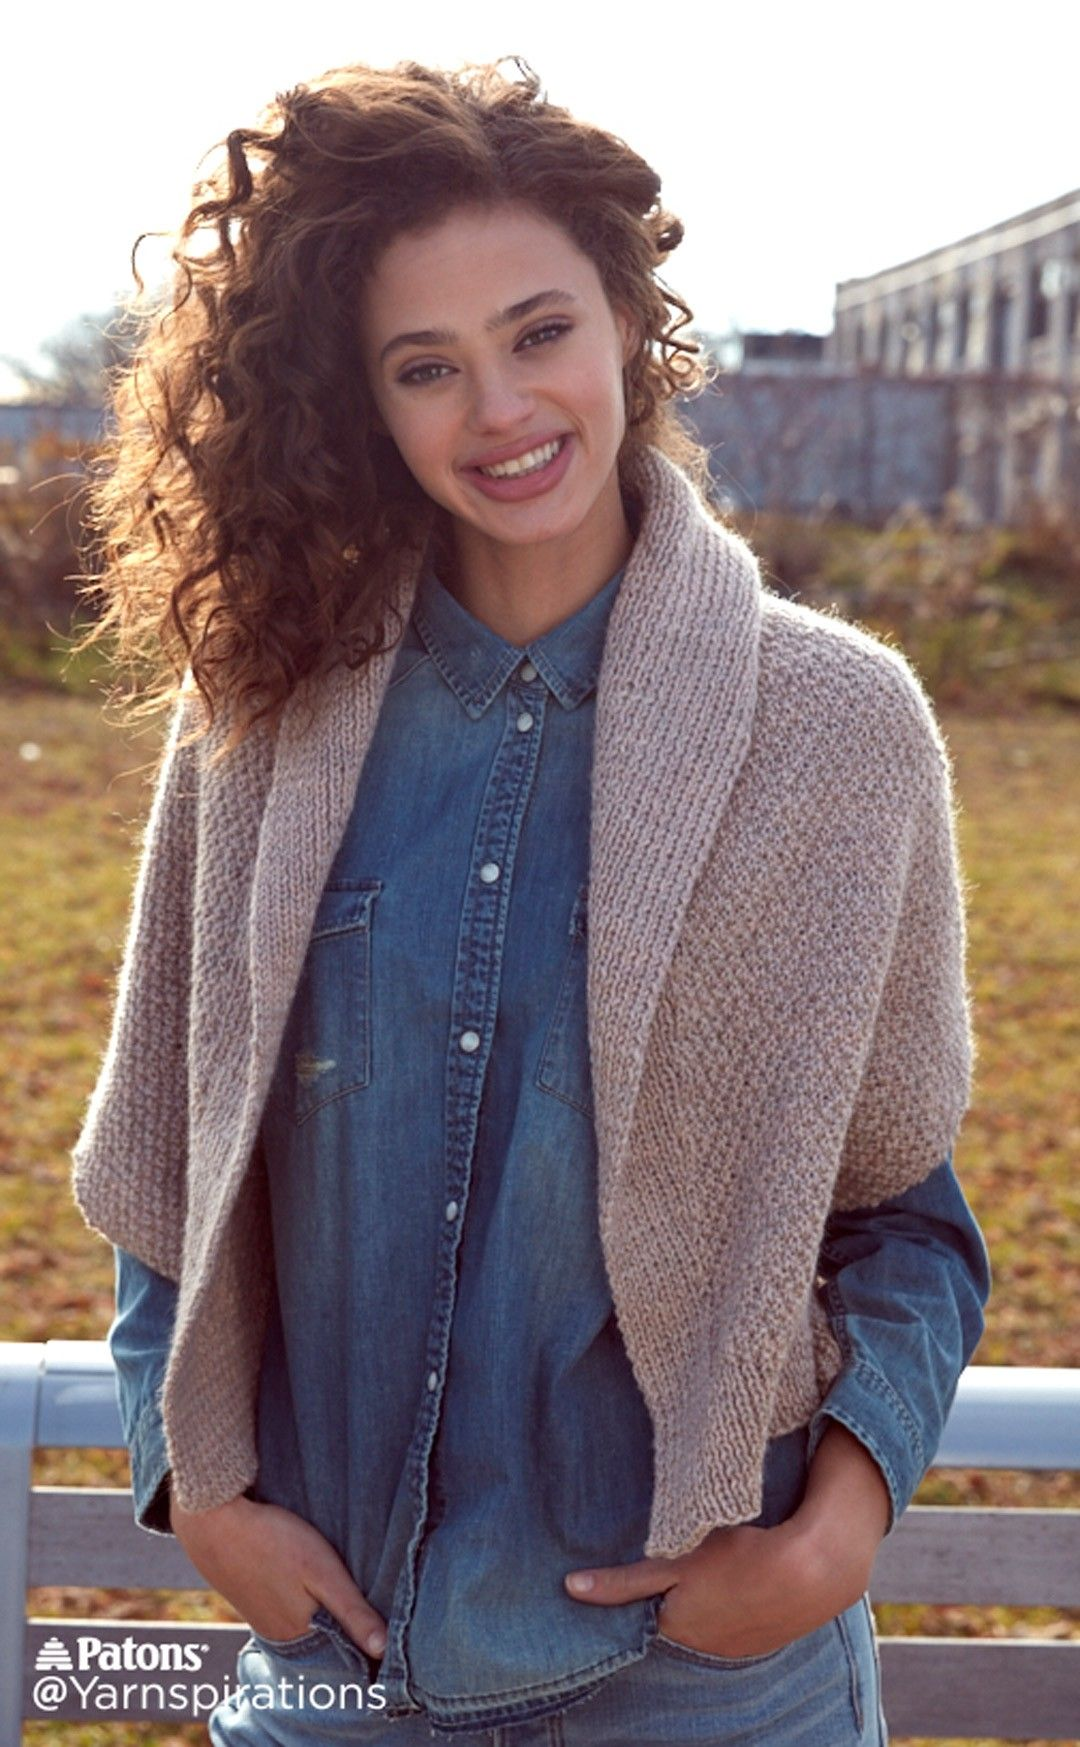 Knit envelope cardigan fold yourself up in the knit envelope free knitting pattern for envelope cardigan easy sweater pattern features the irish moss stitch and shawl collar knit in two pieces with the only shaping bankloansurffo Choice Image